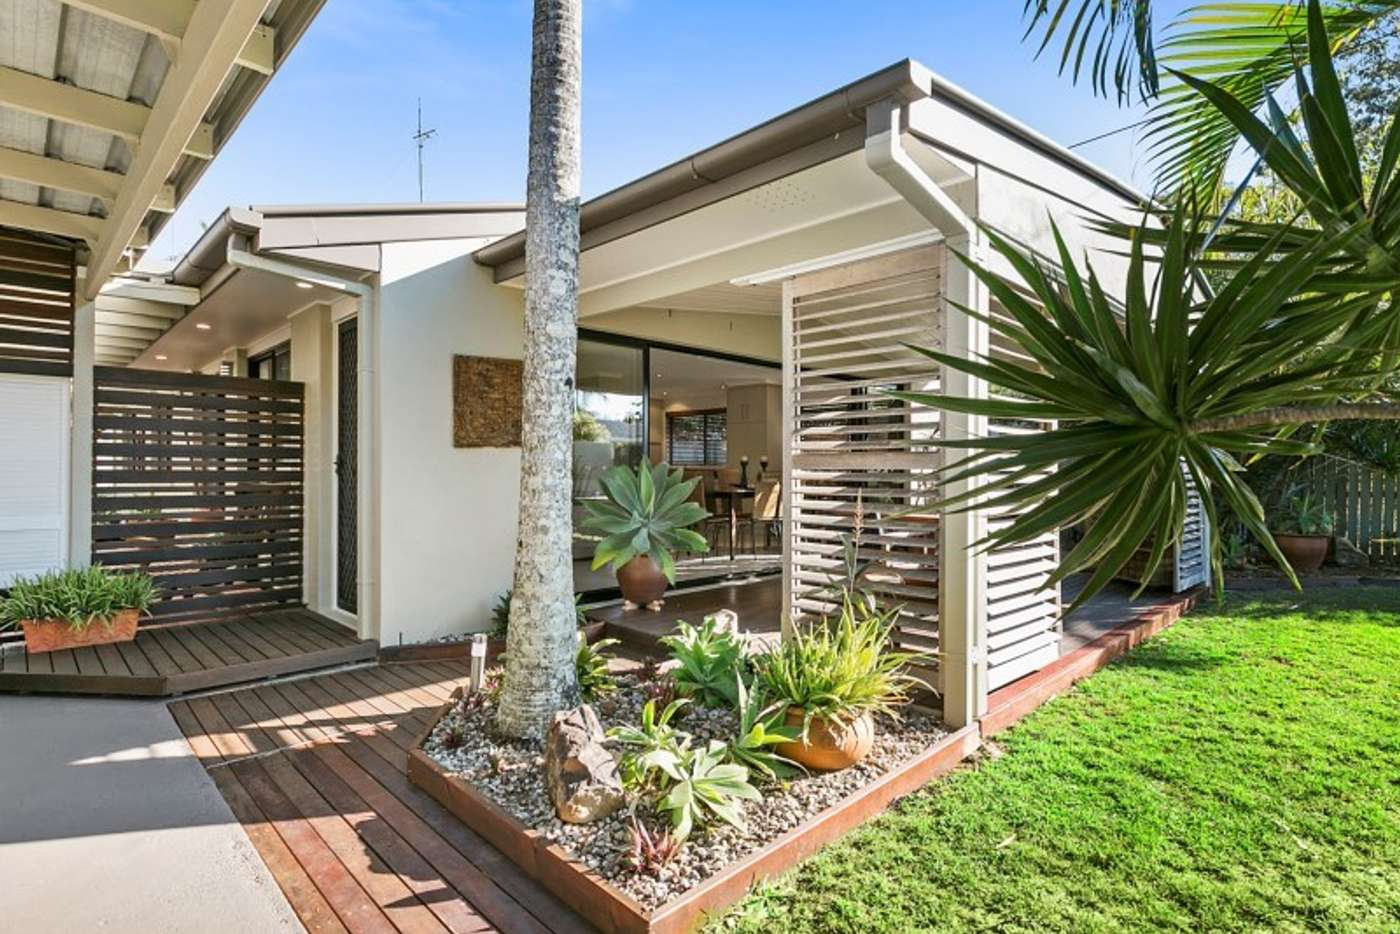 Main view of Homely house listing, 7 Koel Street, Noosaville QLD 4566